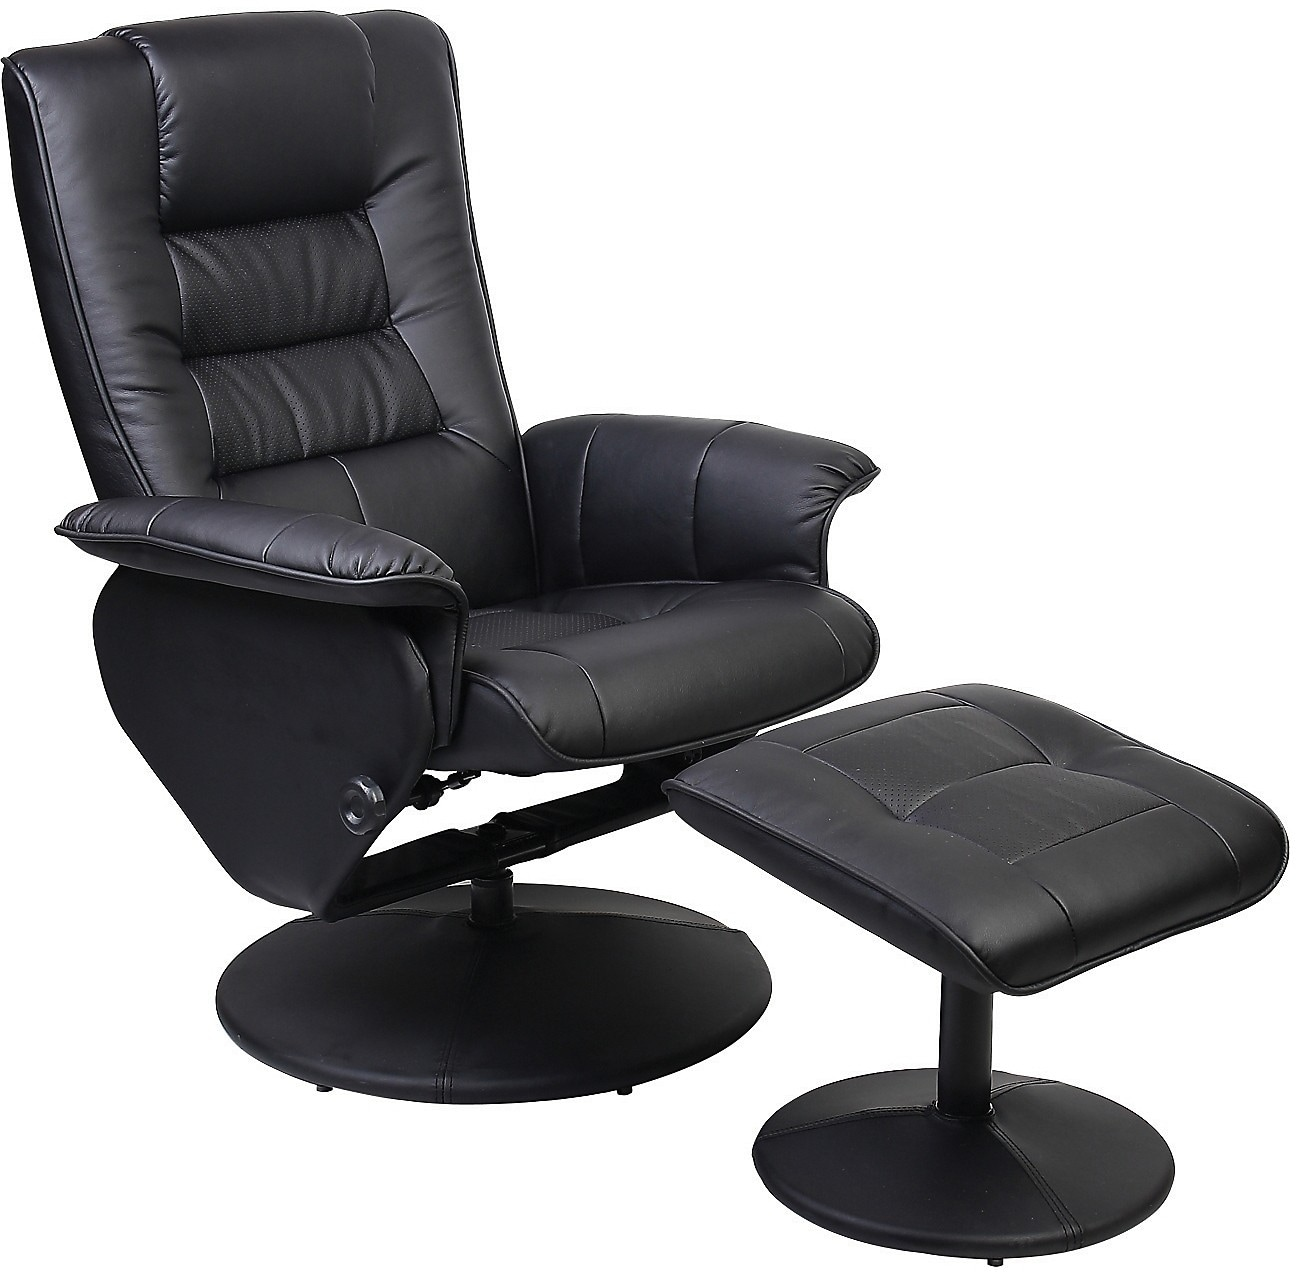 Dallas Cowboy Chair Duncan Reclining Chair W Ottoman Black The Brick